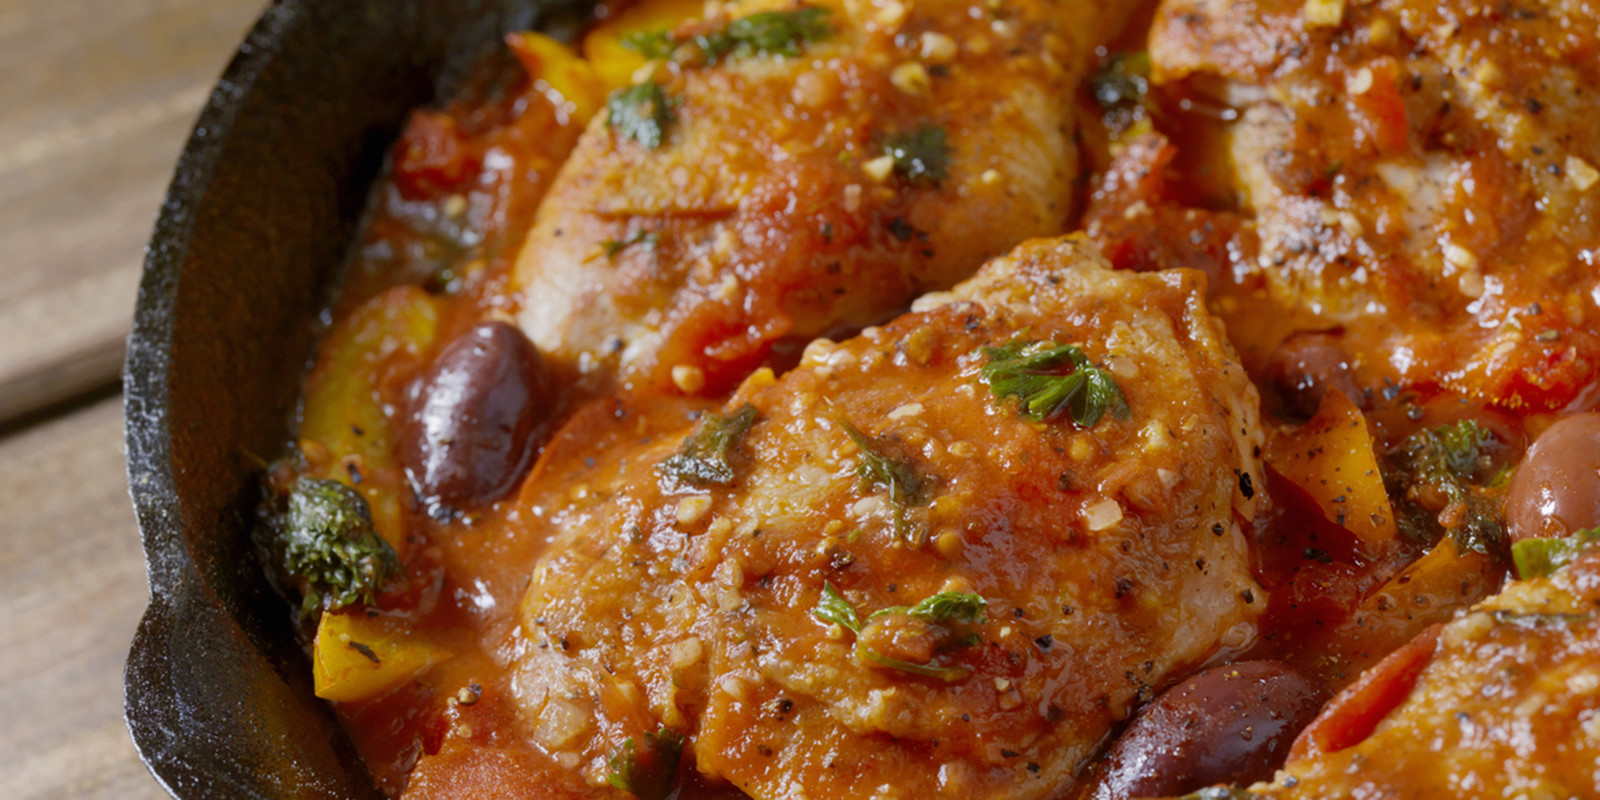 Pan Seared Chicken baked with Tomato Sauce, Peppers, Parsley and Black Olives